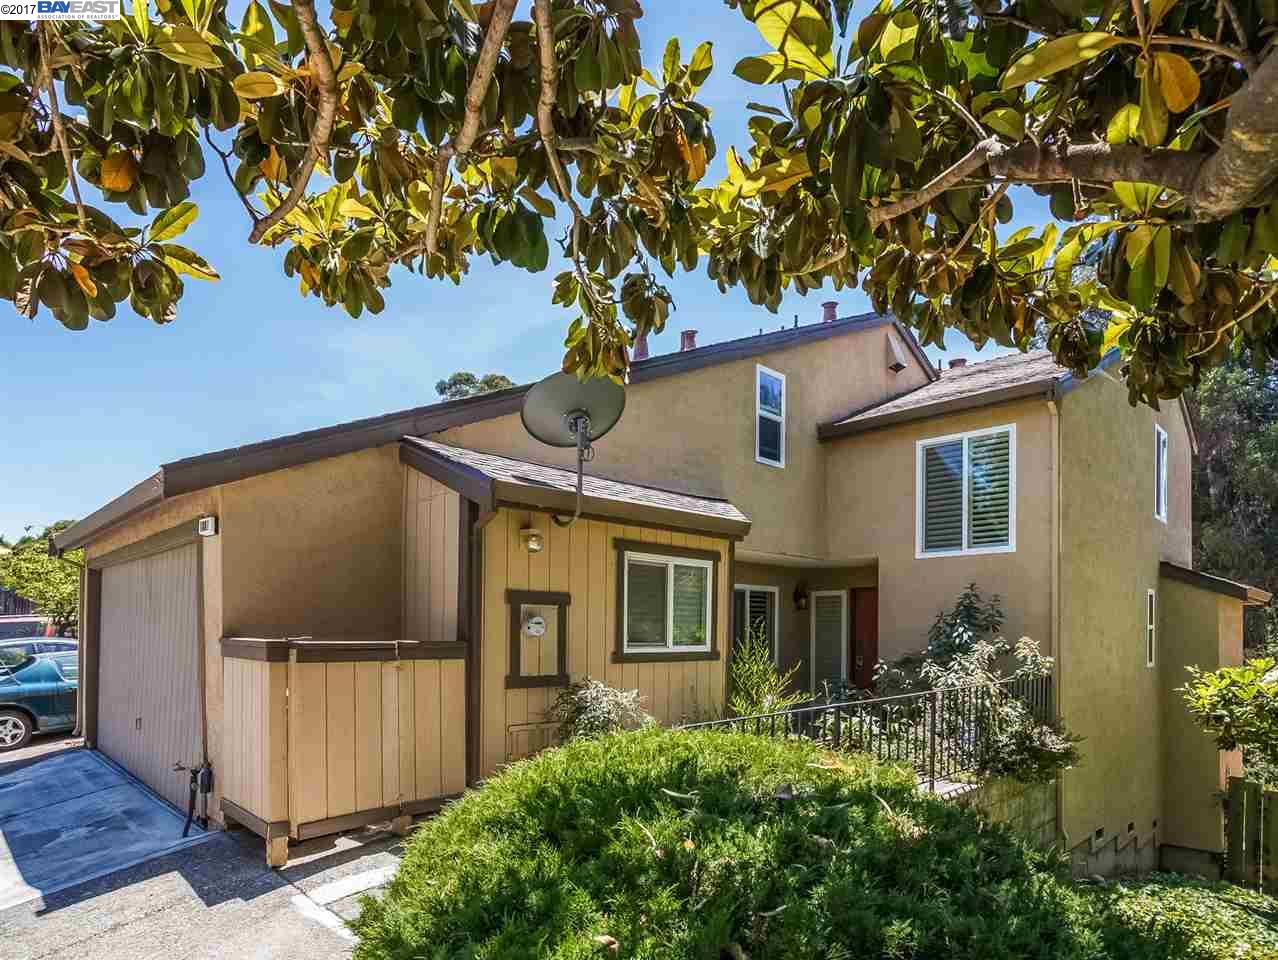 Additional photo for property listing at 1881 Chantilly Lane  Hayward, California 94541 Estados Unidos